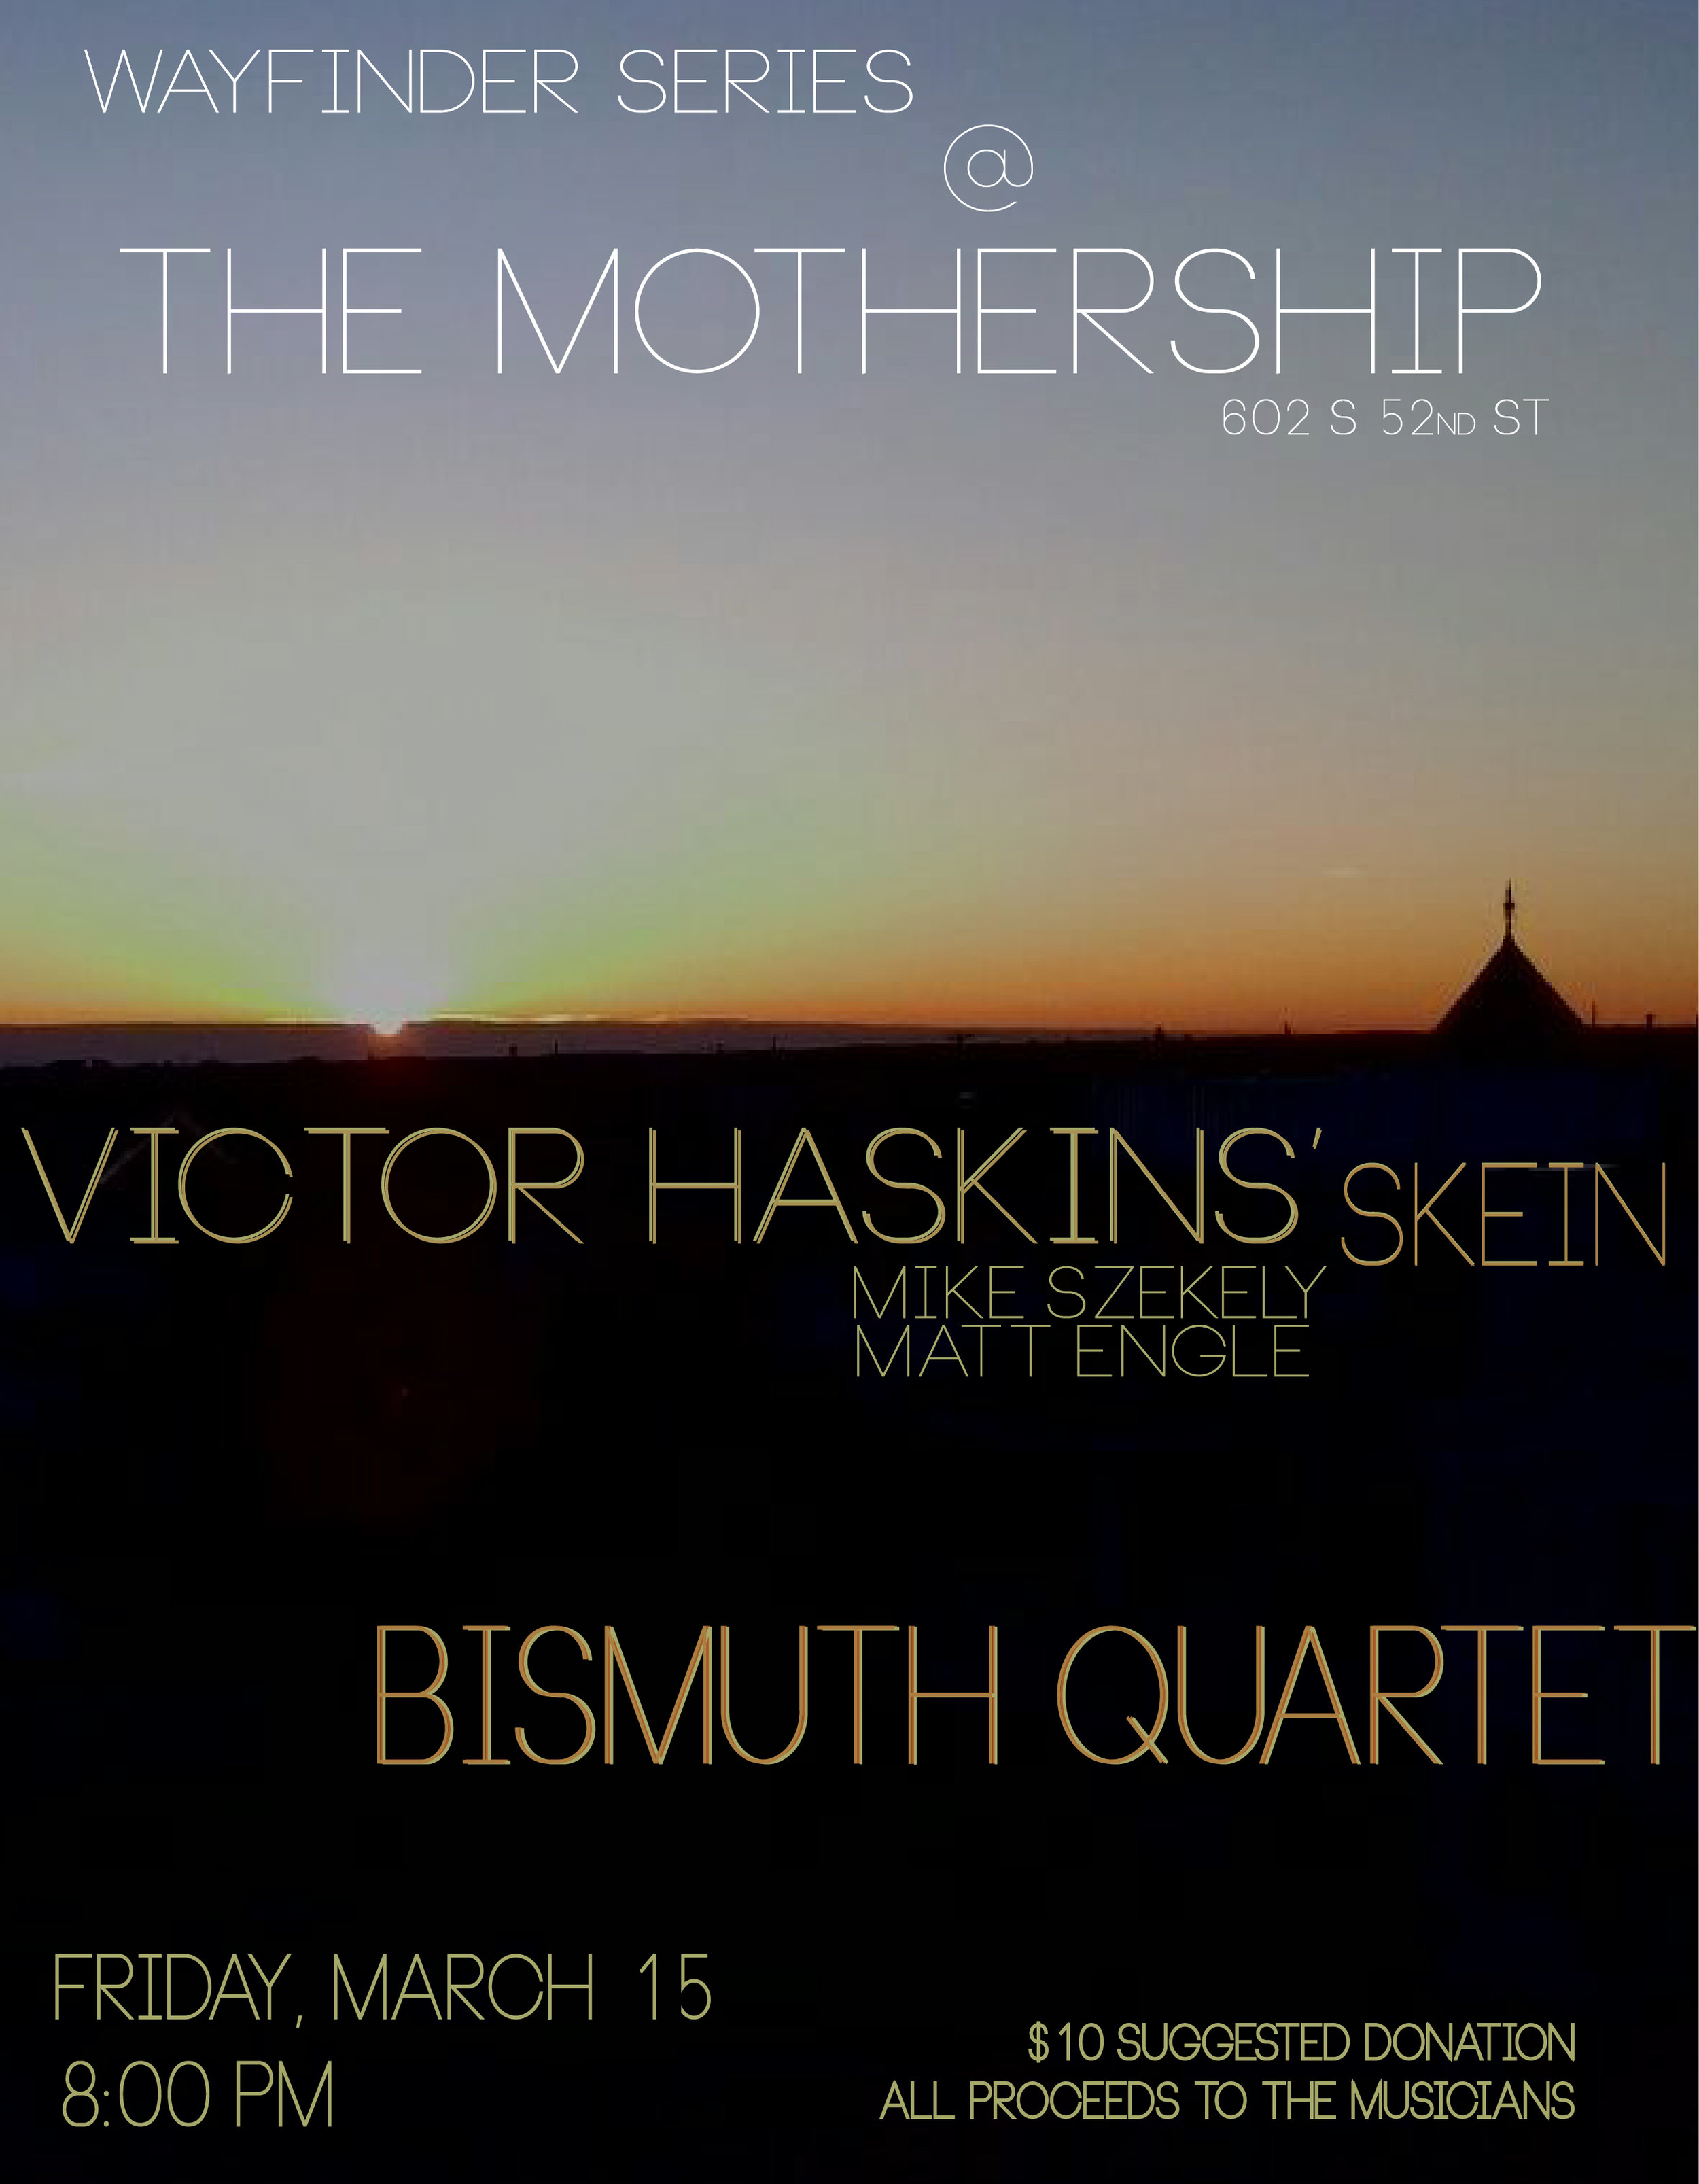 Wayfinder - March edition - BISMUTH QUARTET++++++++++++++VICTOR HASKINS' SKEINwith Matt Engle, bassMike Szekely, drumsFriday, March 15th 8:00pmThe Mothership602 S. 52nd St.all shows $10 suggested donation (no one turned away for lack of funds)BYO + drinks for sale